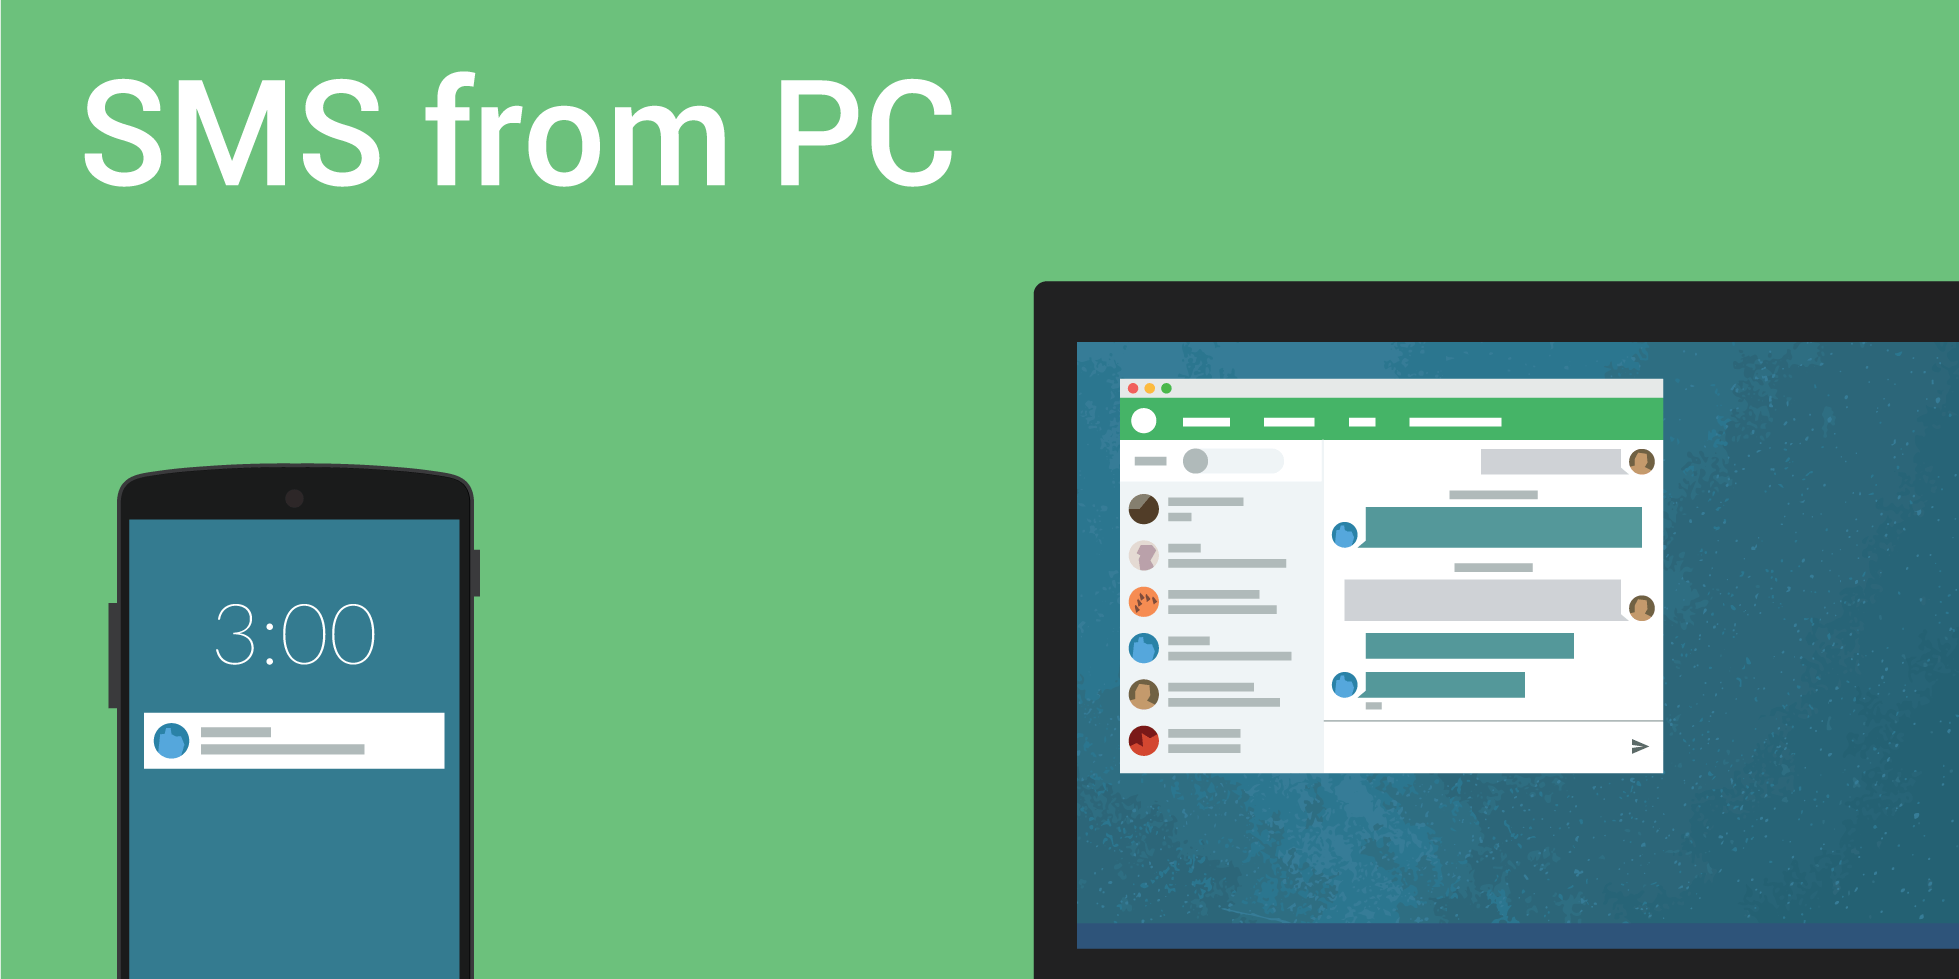 Pushbullet service adds photo messaging (MMS) from PC, increased